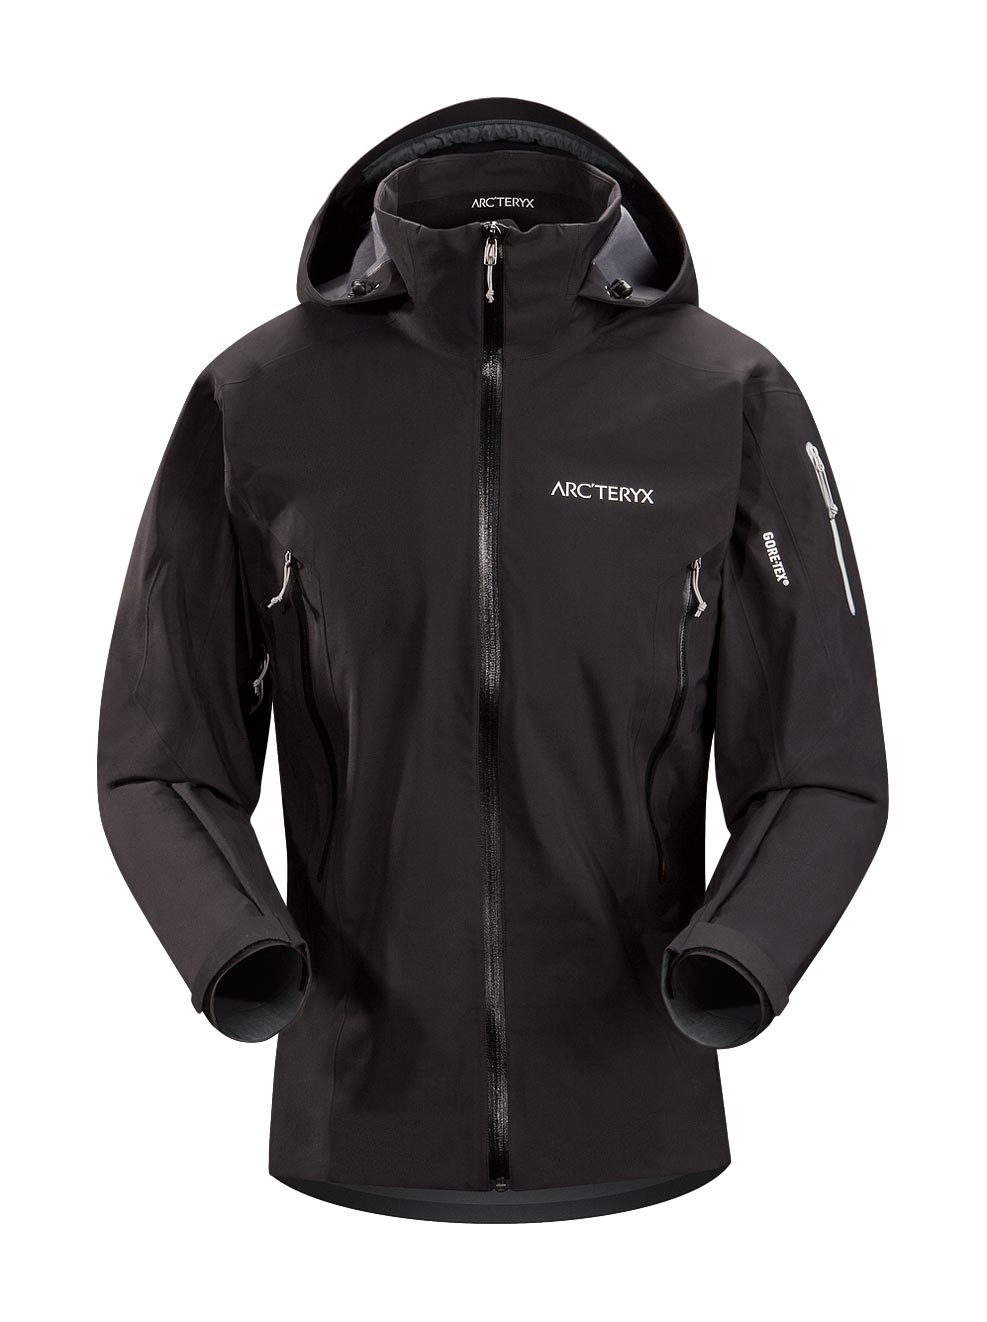 Arcteryx Black Stingray Jacket